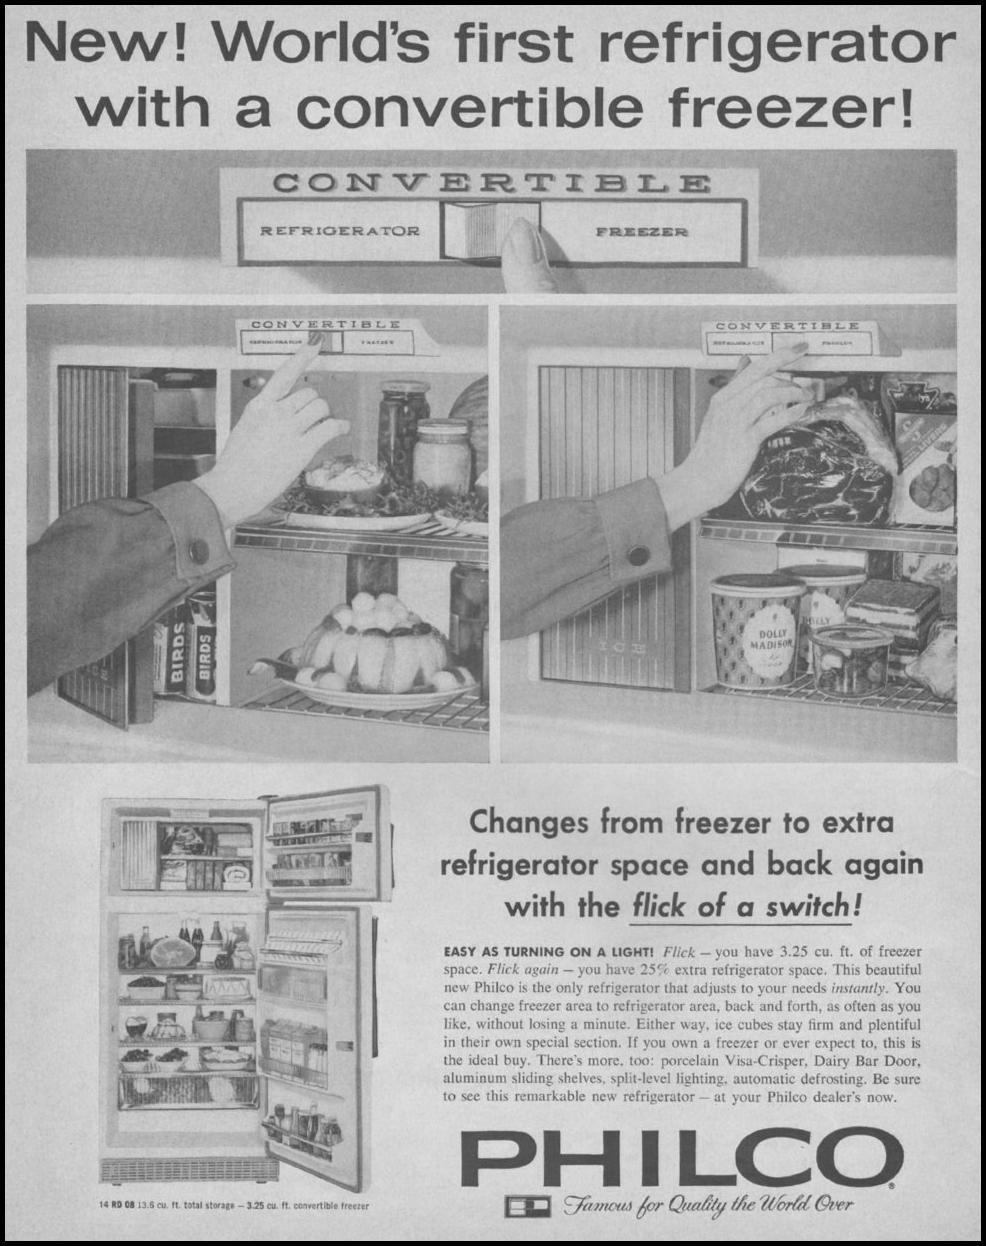 PHILCO REFRIGERATORS SATURDAY EVENING POST 06/11/1960 p. 2